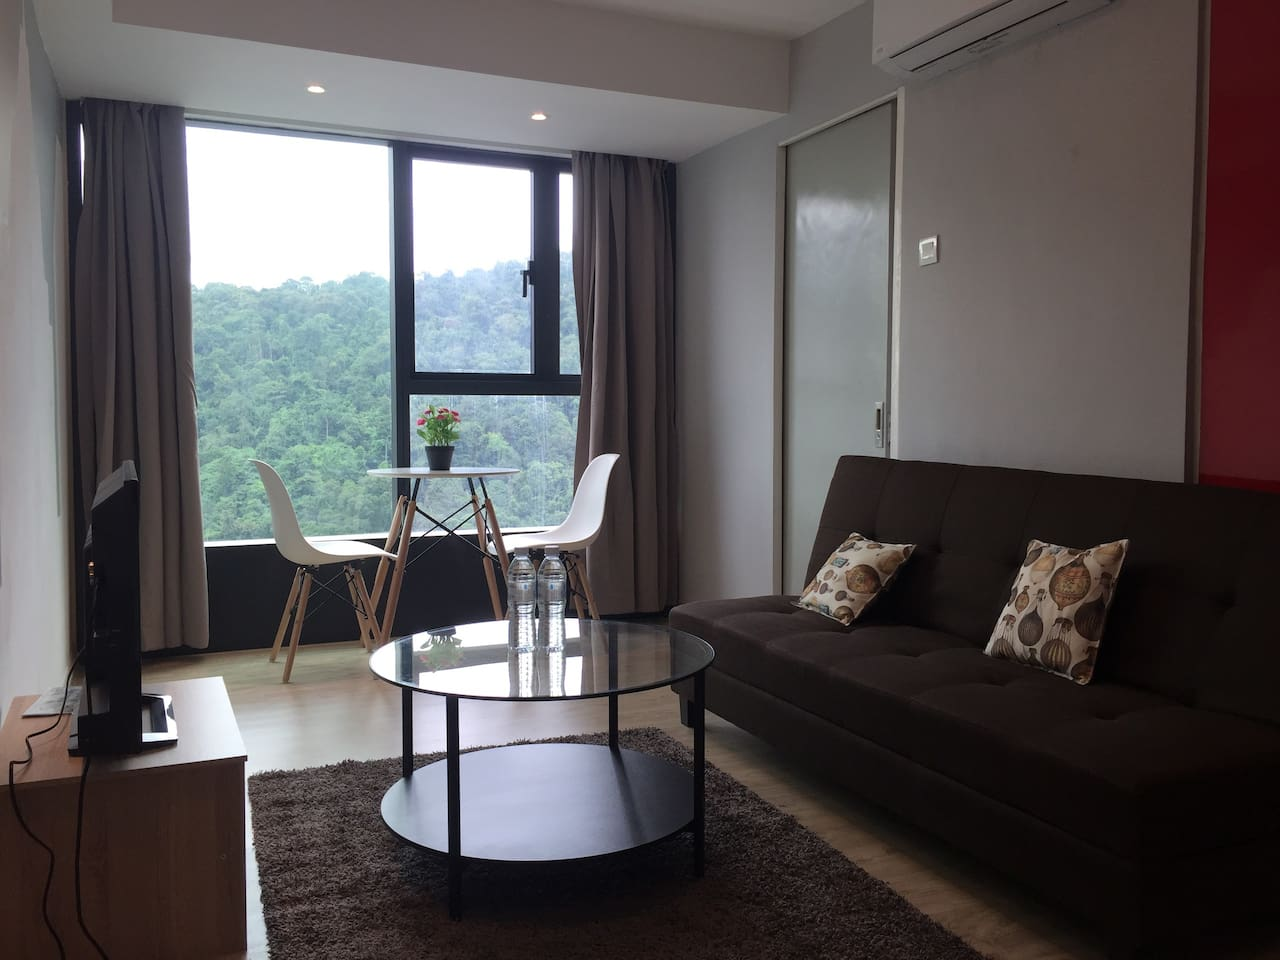 Spacious living room overlooking vast greenery. Inspirations are made here ....